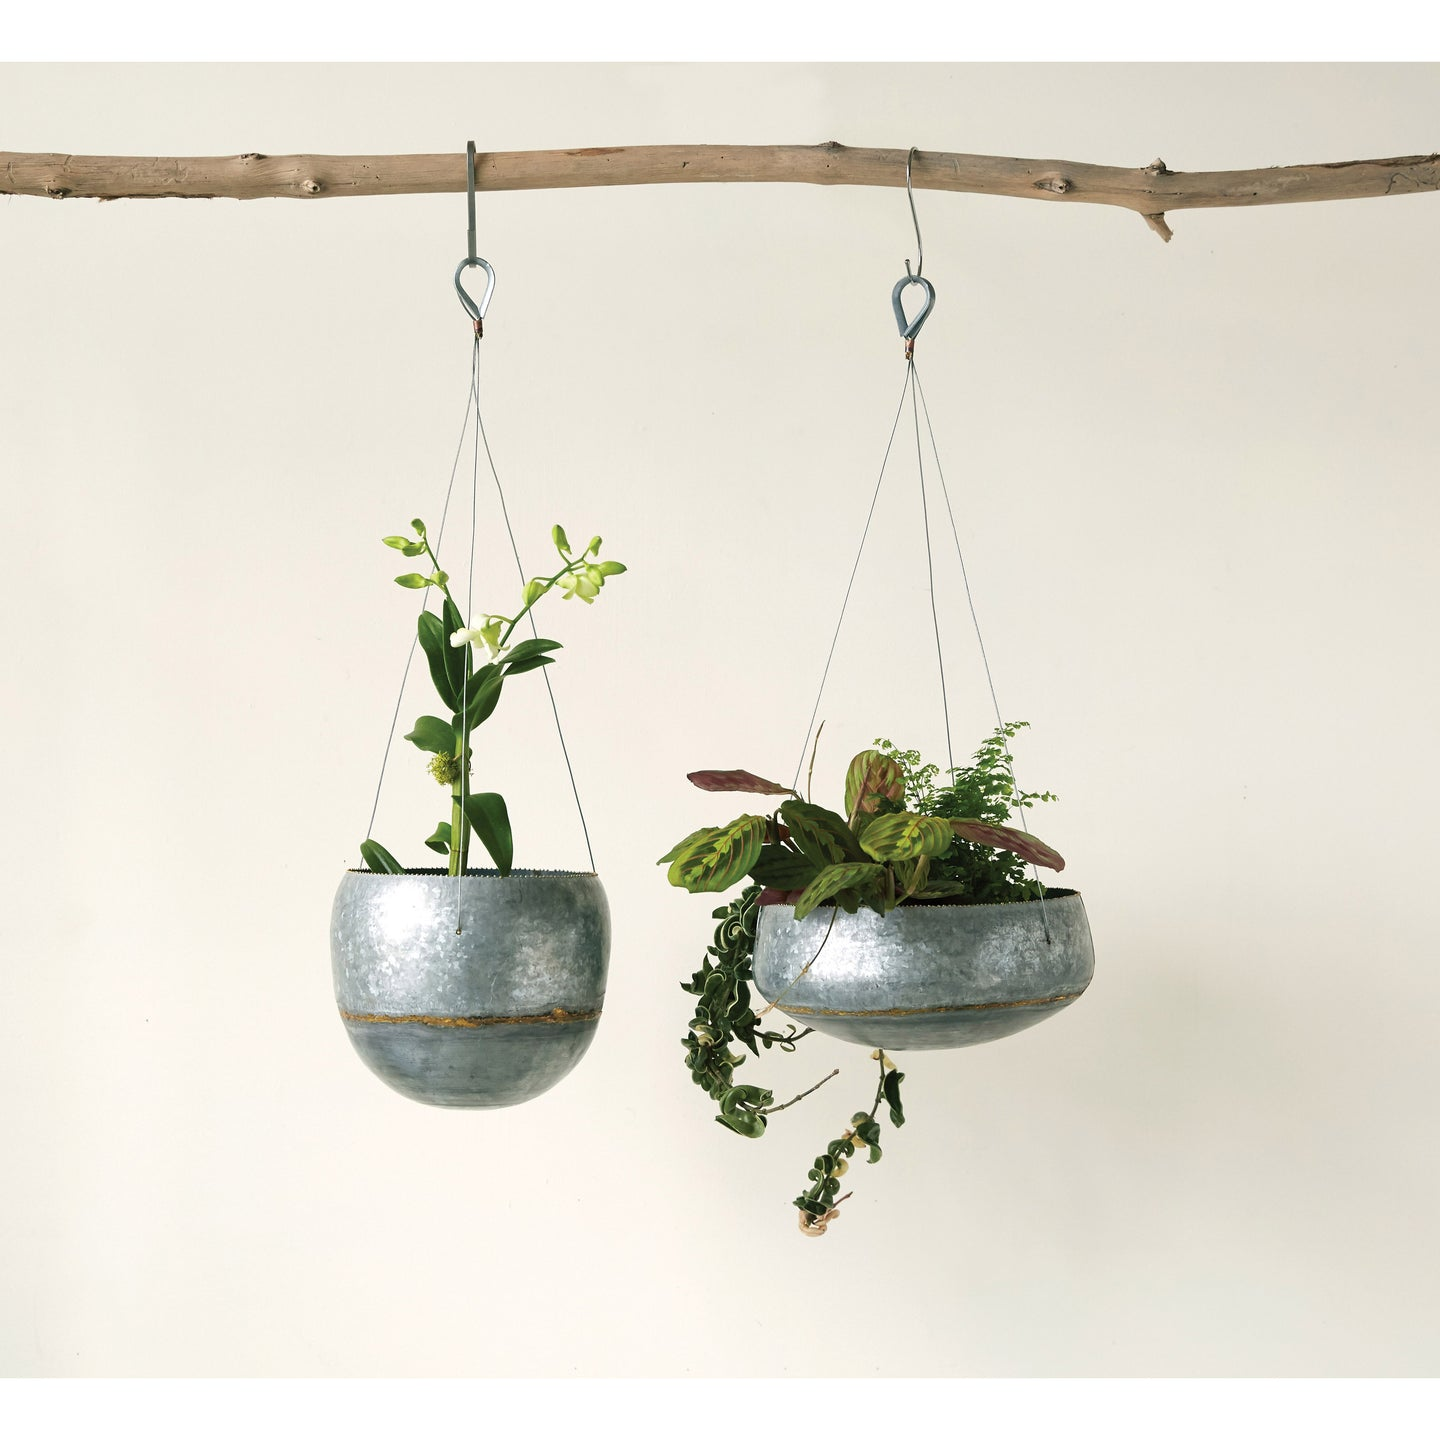 Galvanizing Hanging Planter with Gold Details - Free Shipping!